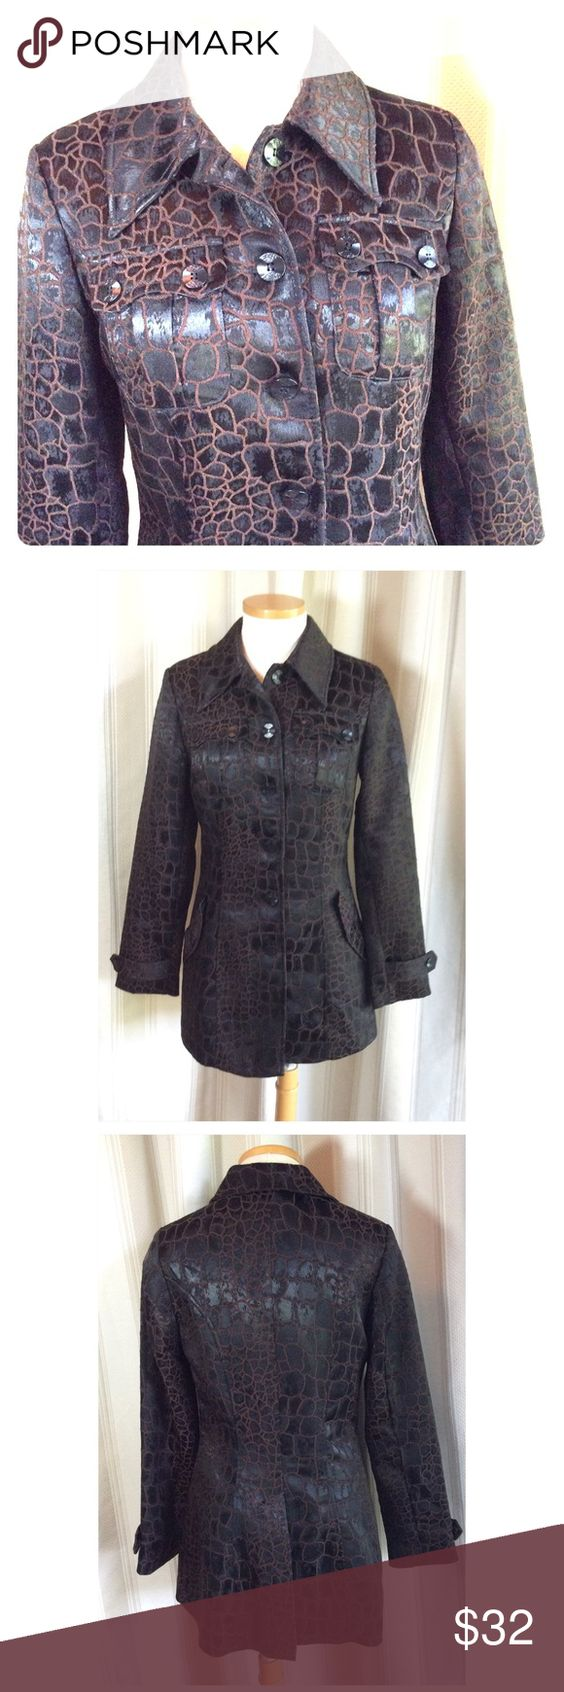 "BISOU BISOU LONG JACKET Satiny fur look material of Polyester and 3% Spandex. Fully lined Fitted shape with kick pleat in back. Four pockets.  18"" at chest 15.5 at waist. 29"" long. Excellent condition Bisou Bisou Jackets & Coats"